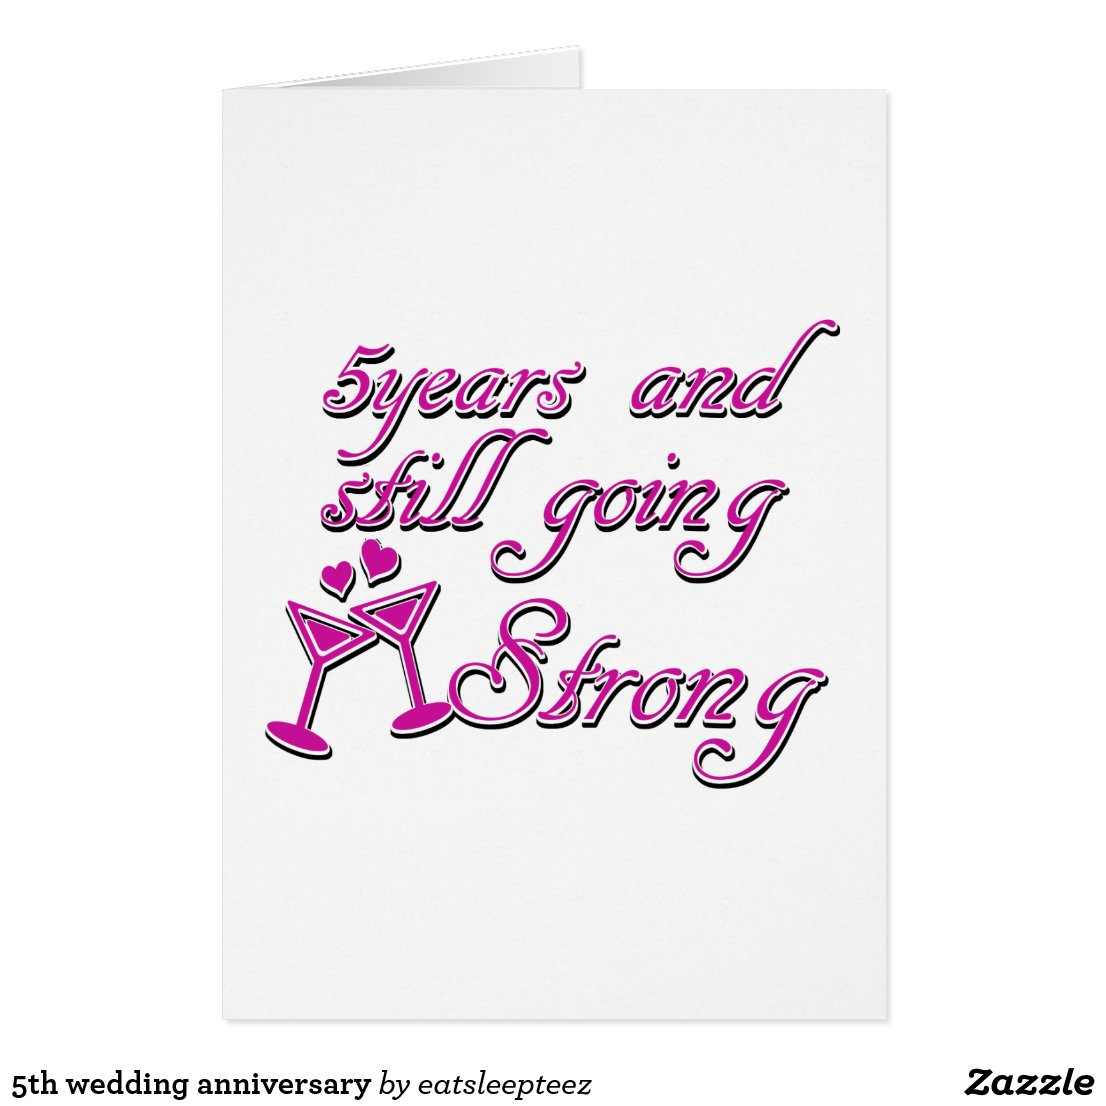 5th wedding anniversary card